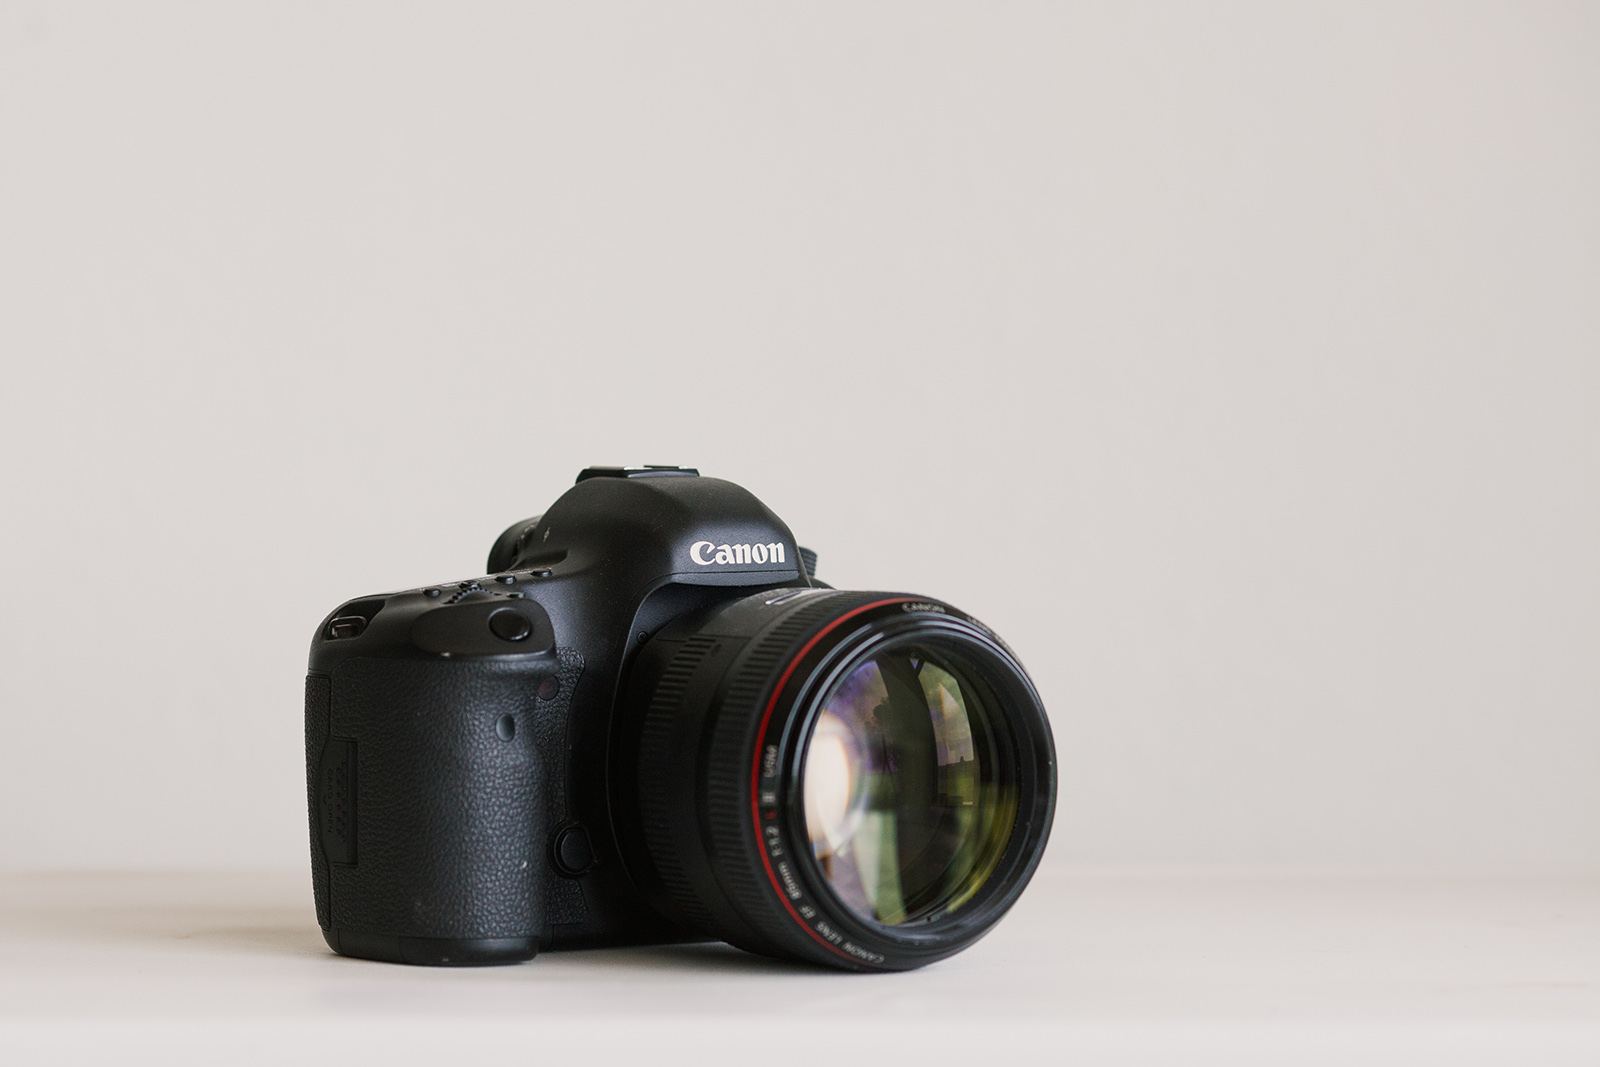 Canon 5d mark III full frame camera